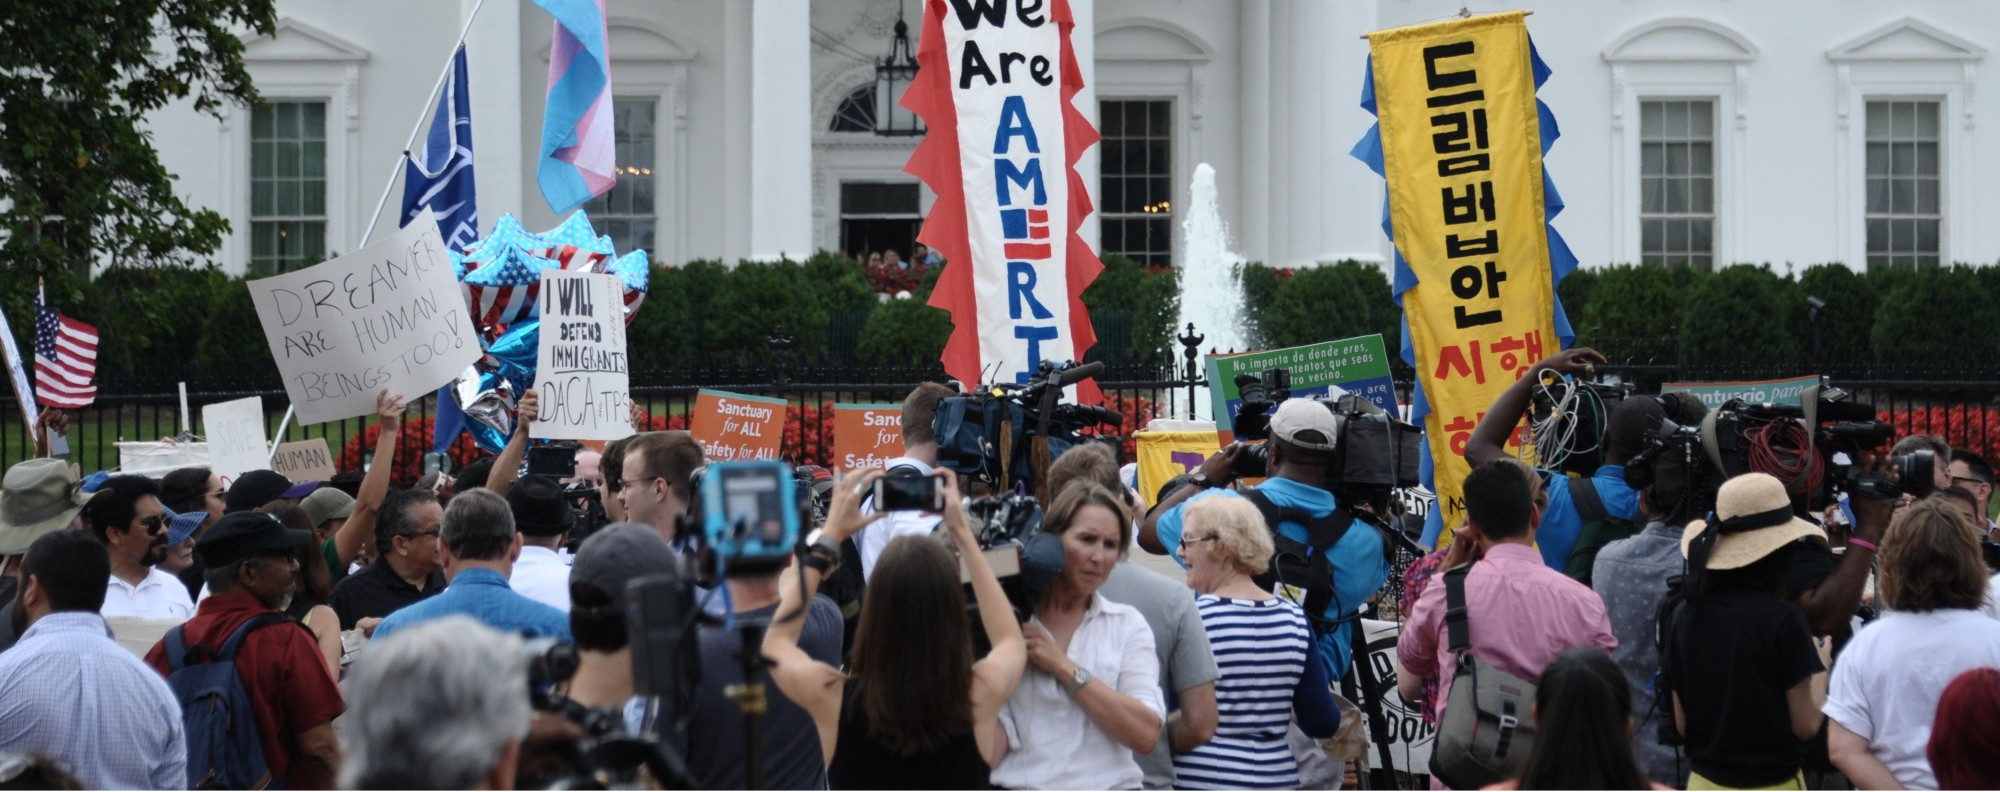 An immigration protest at the White House. Photo: AFP